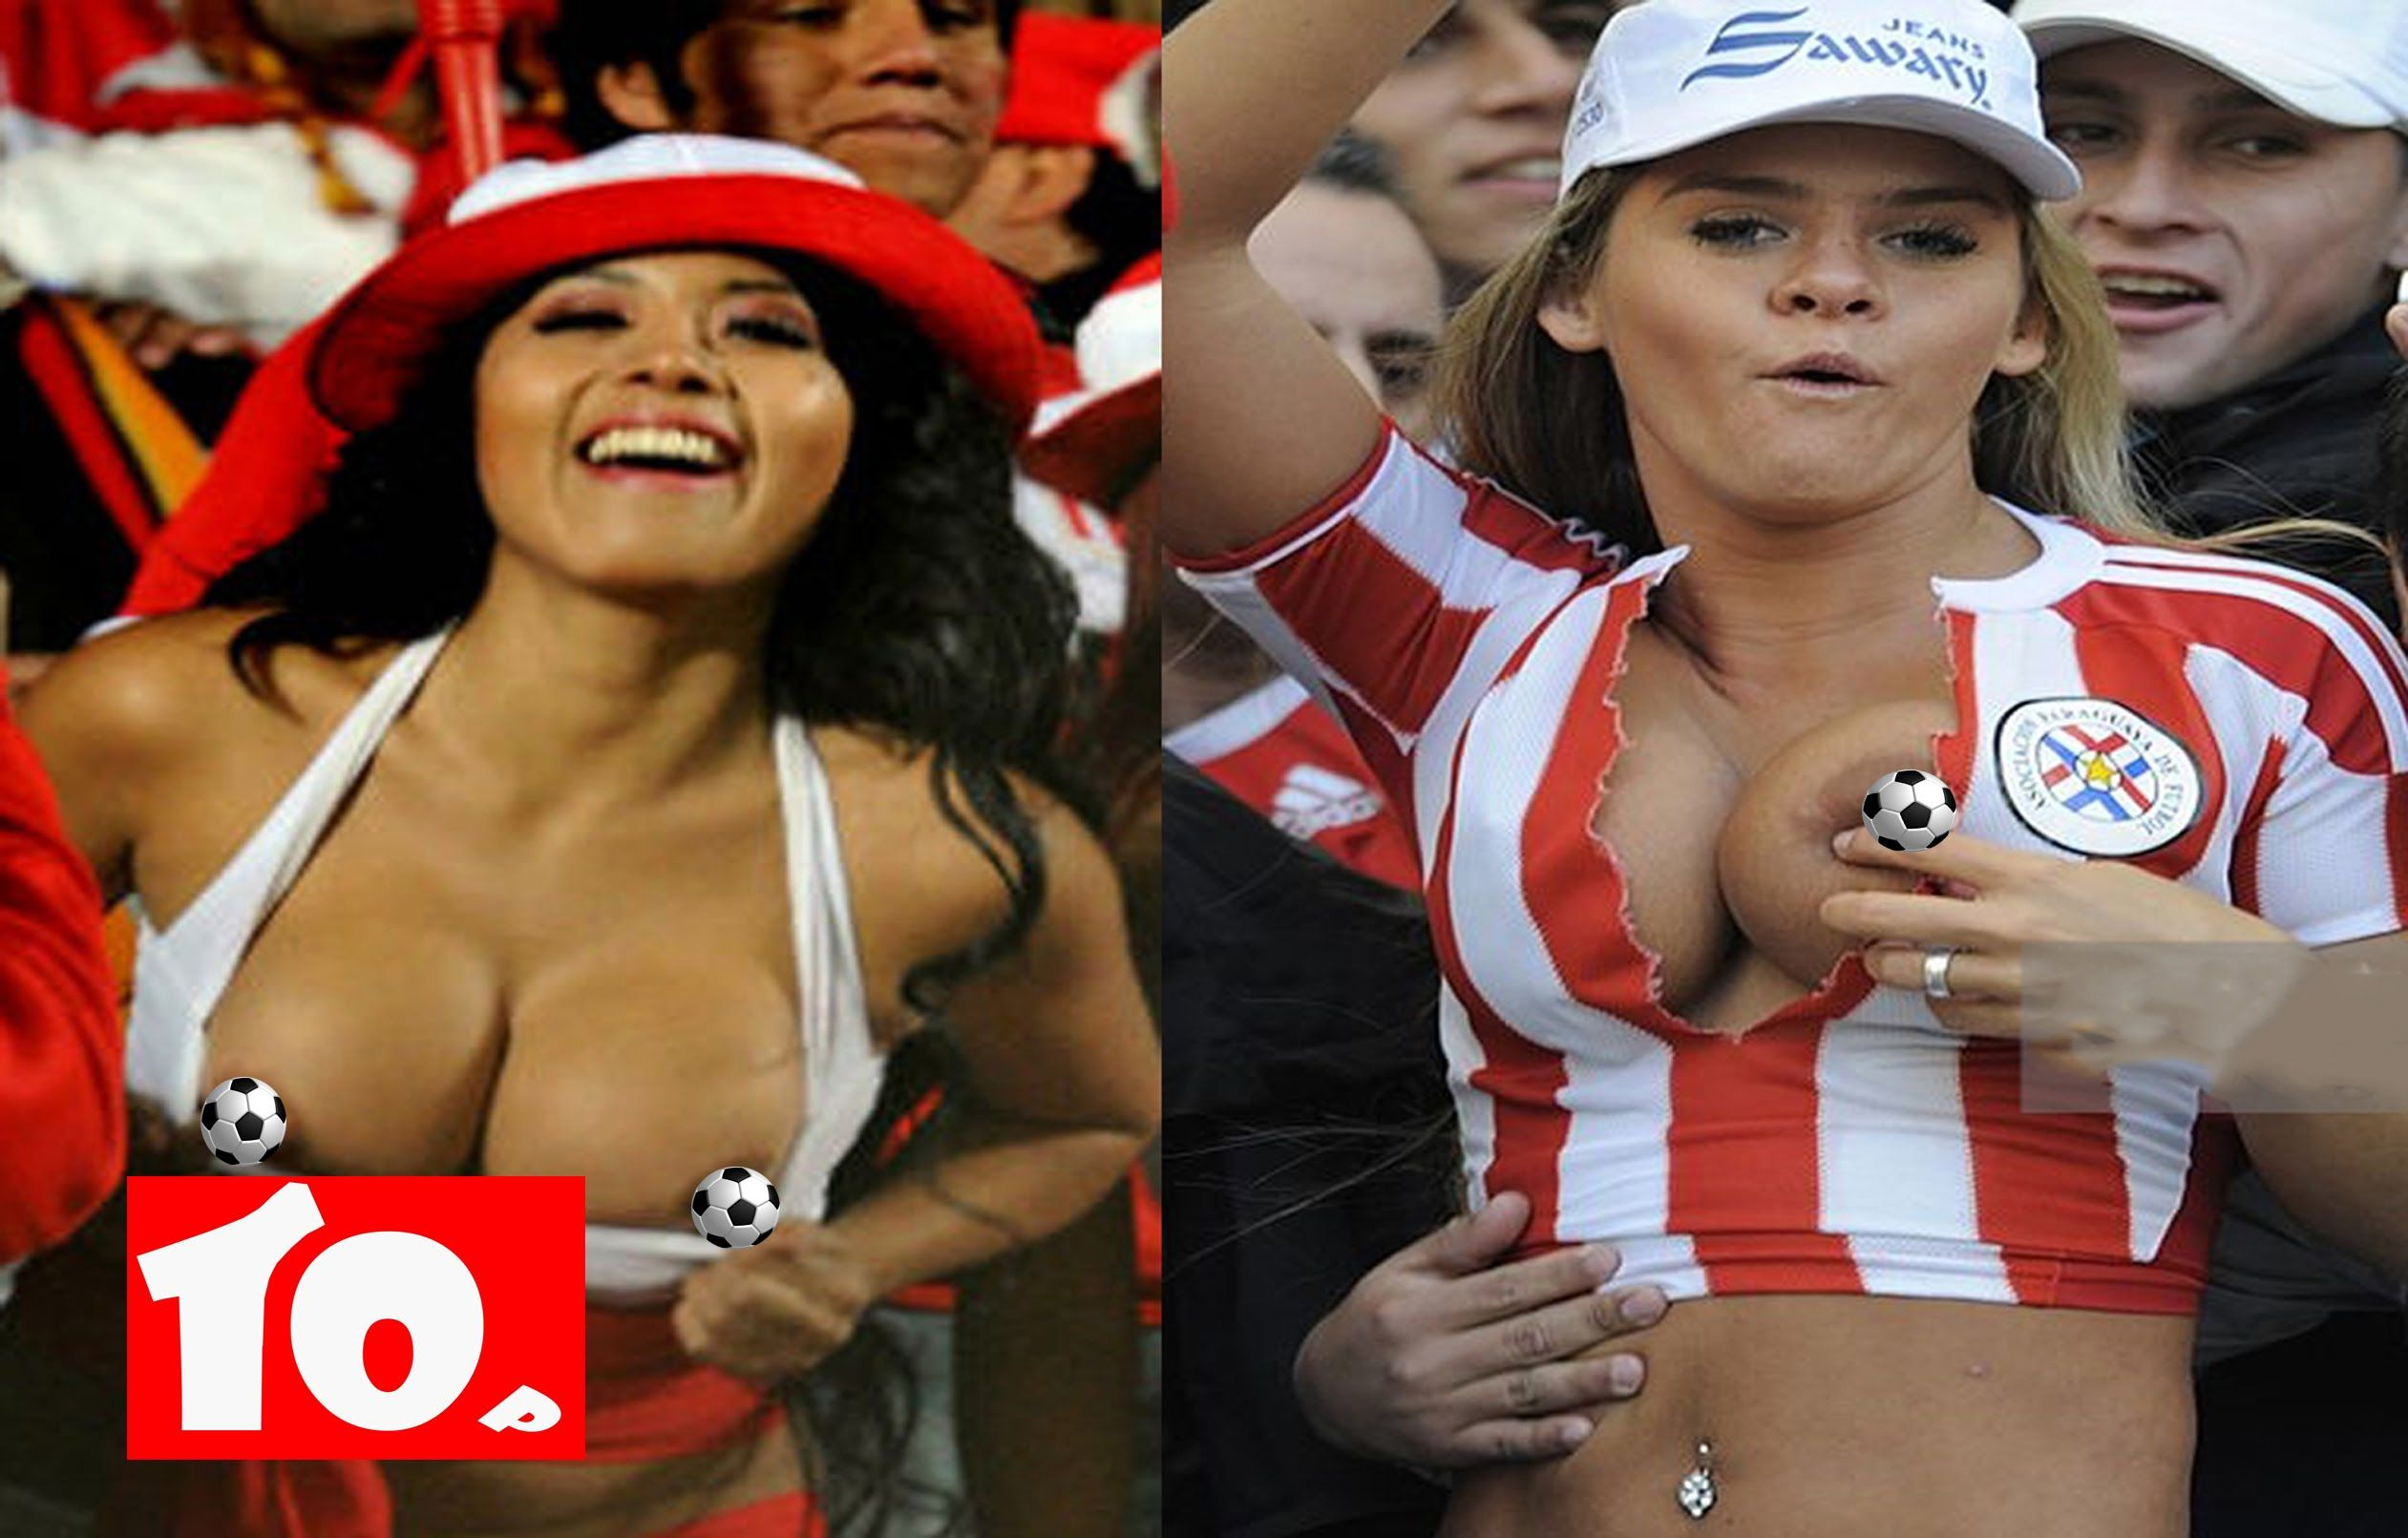 worldcup fans Nude